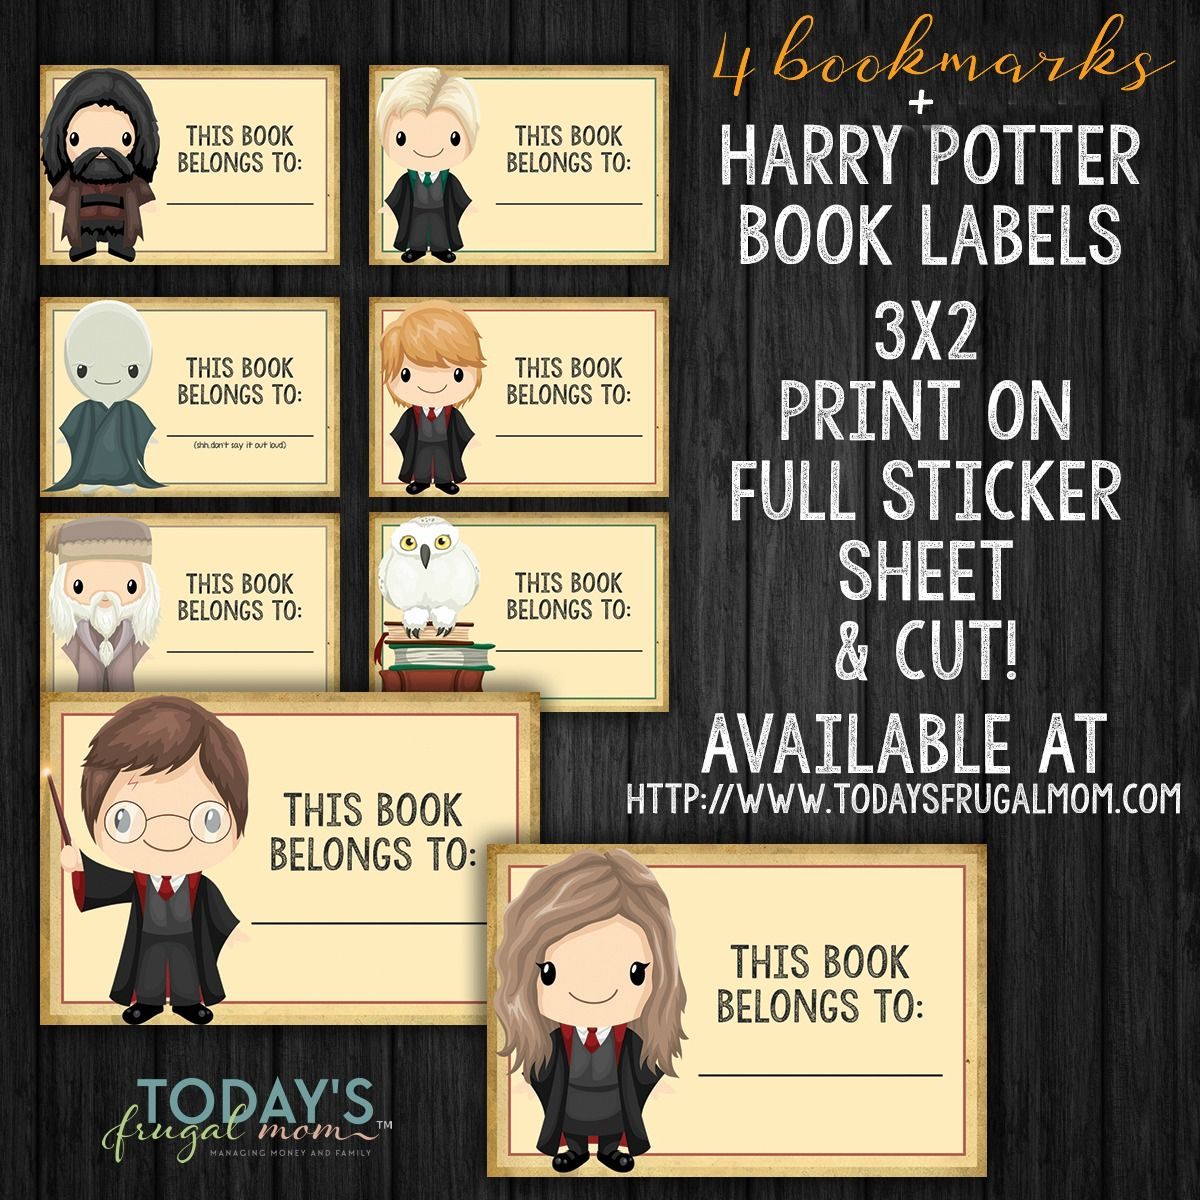 Libros De Harry Potter Online Printable Harry Potter Bookmarks 43 Book Labels